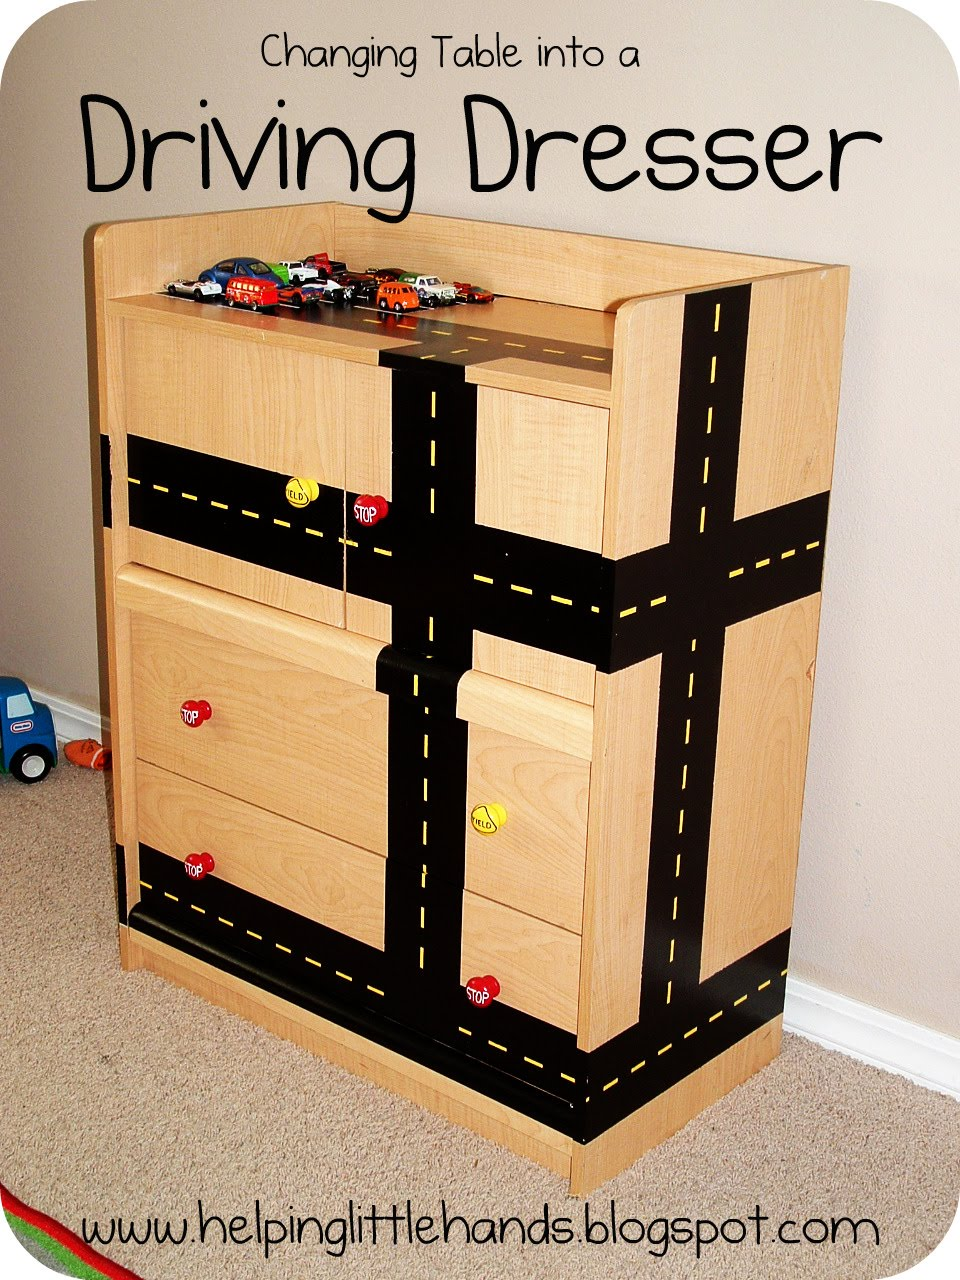 Remodelaholic Kids Changing Table Repurposed Playing Cars